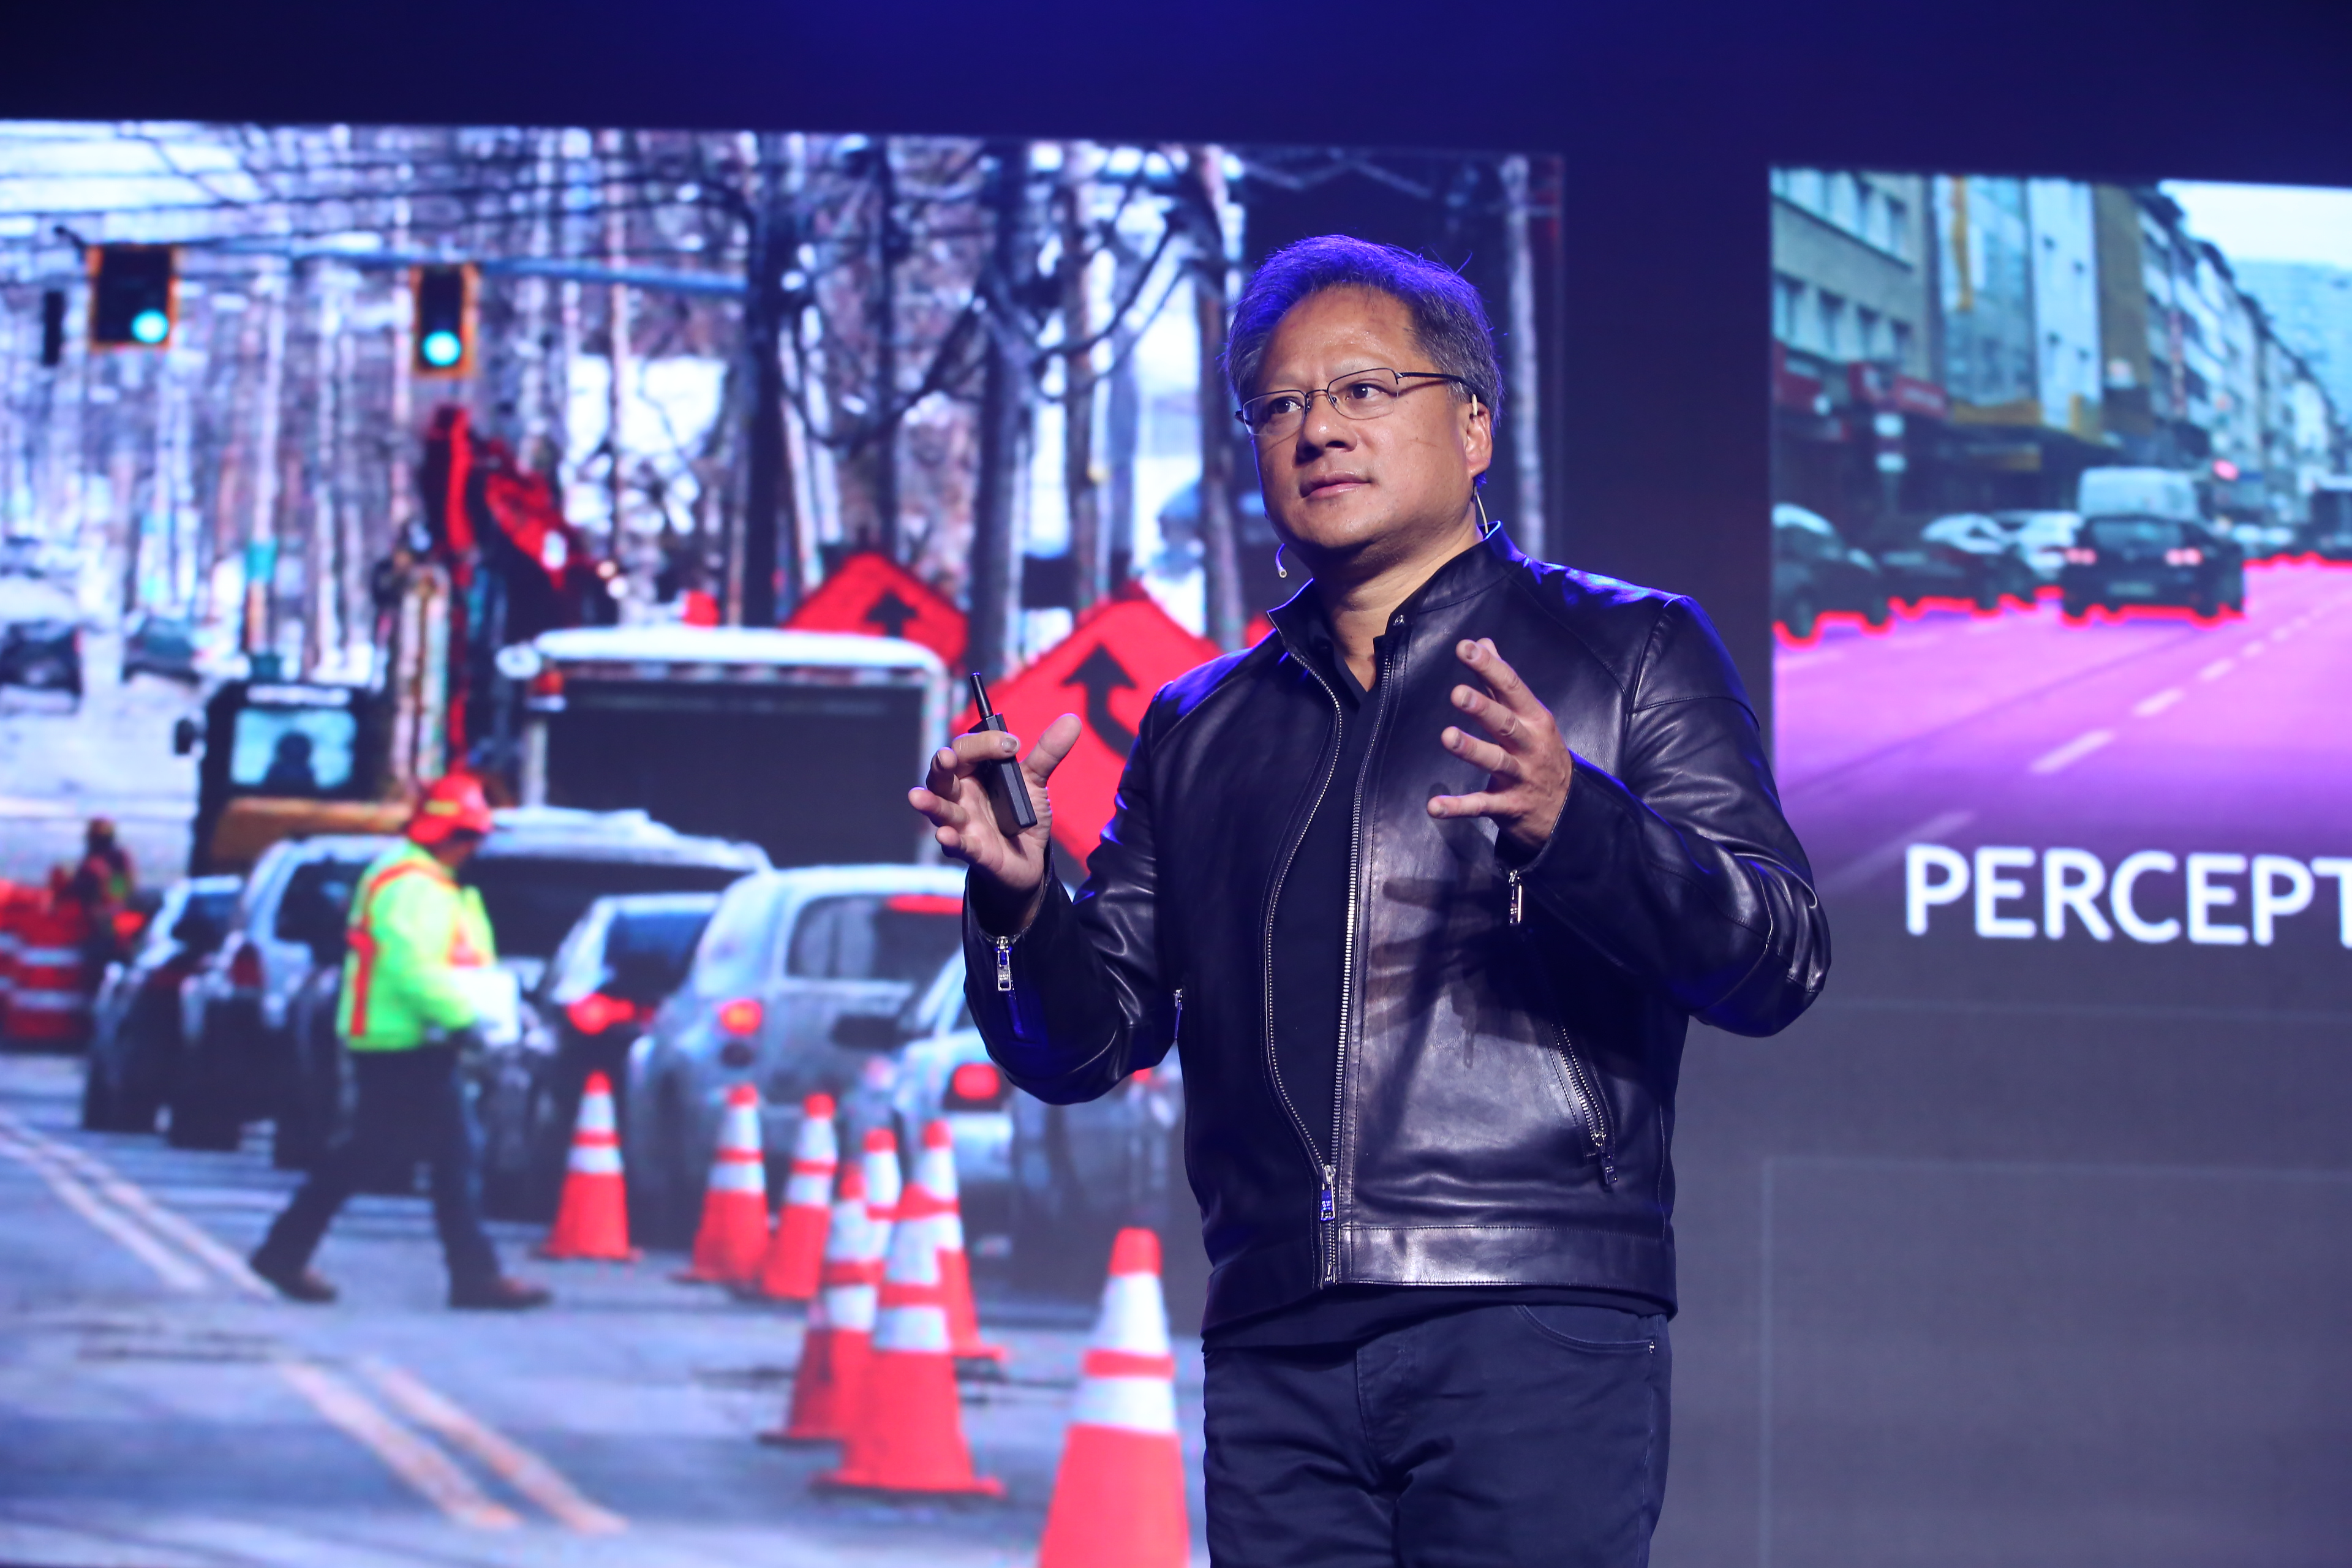 Nvidia CEO Jen-Hsun Huang announced a partnership with Baidu to develop an end-to-end computing platform for self-driving cars.